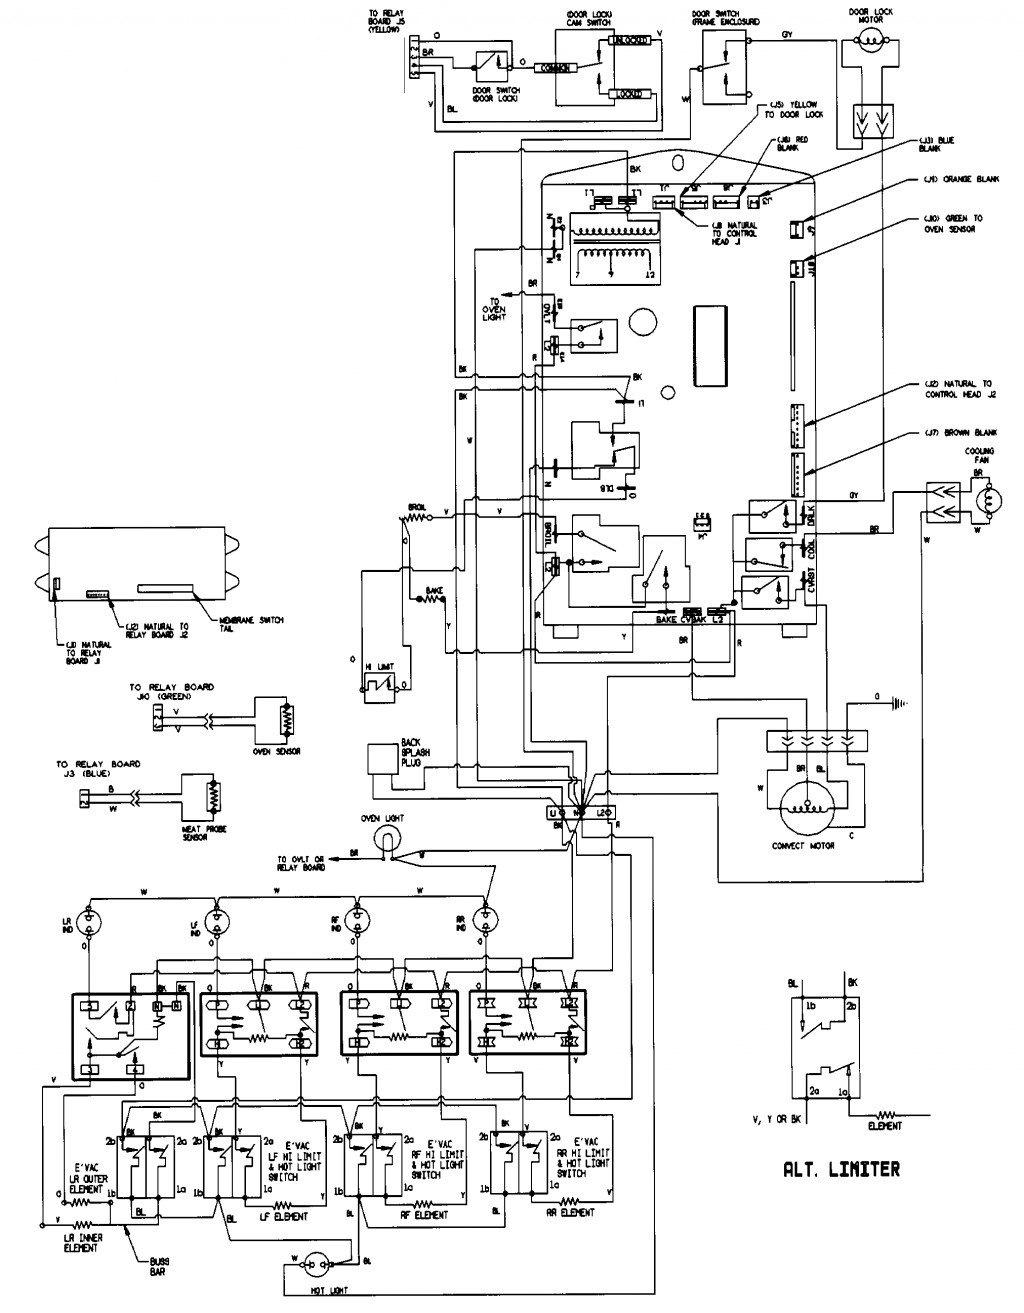 WRG-1835] Kenmore Heat Pump Wiring Diagram Also Amana Side By on